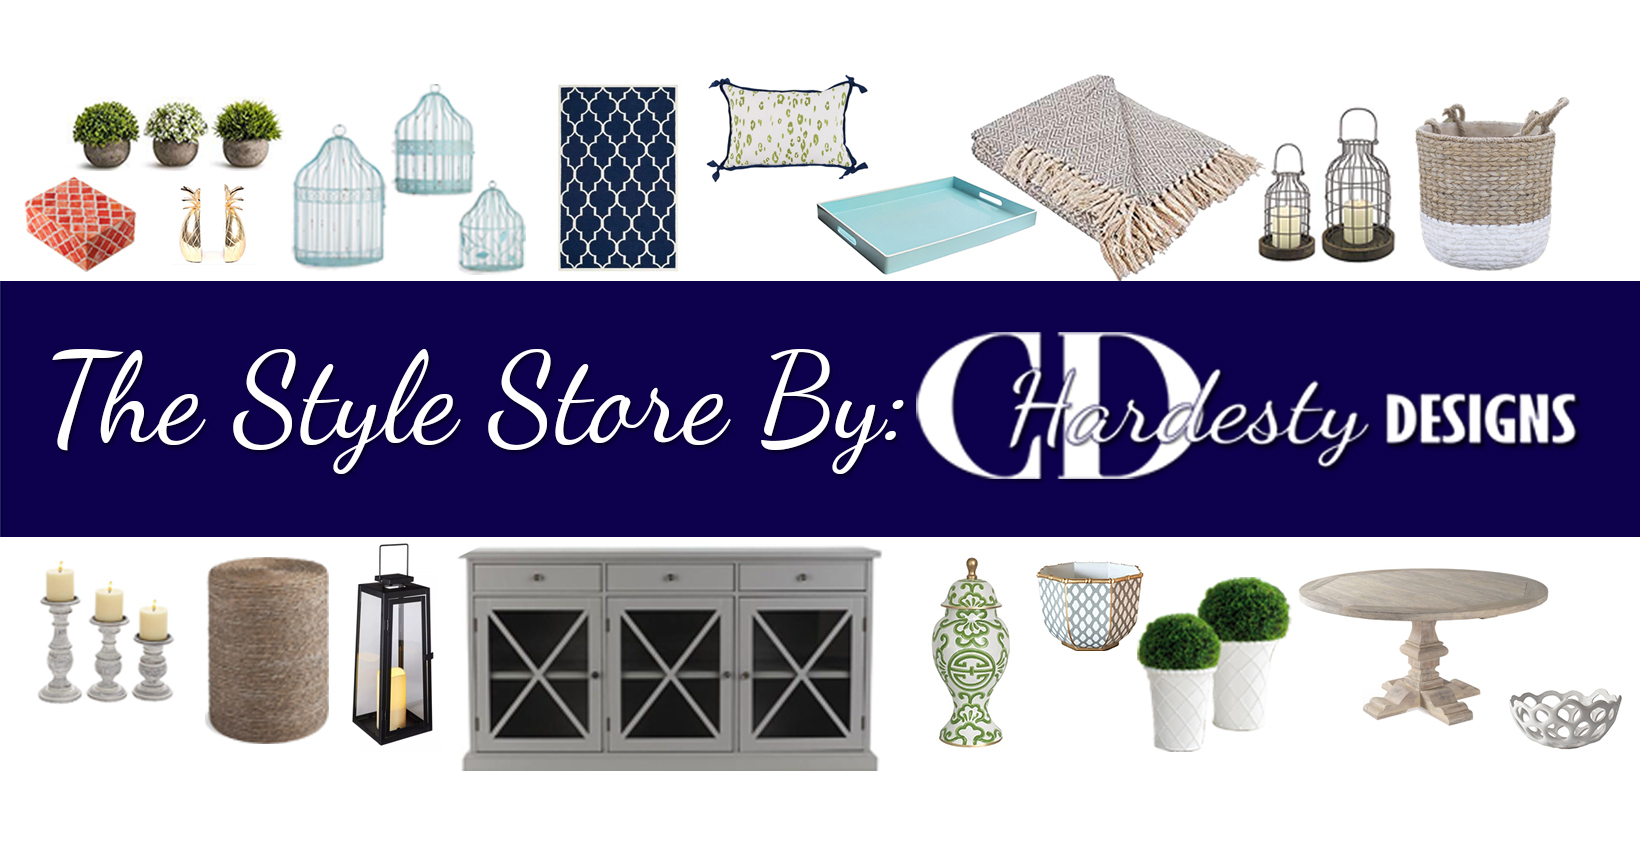 The Style Store By CDHardesty Designs - Stay up to date with all my designer picks!